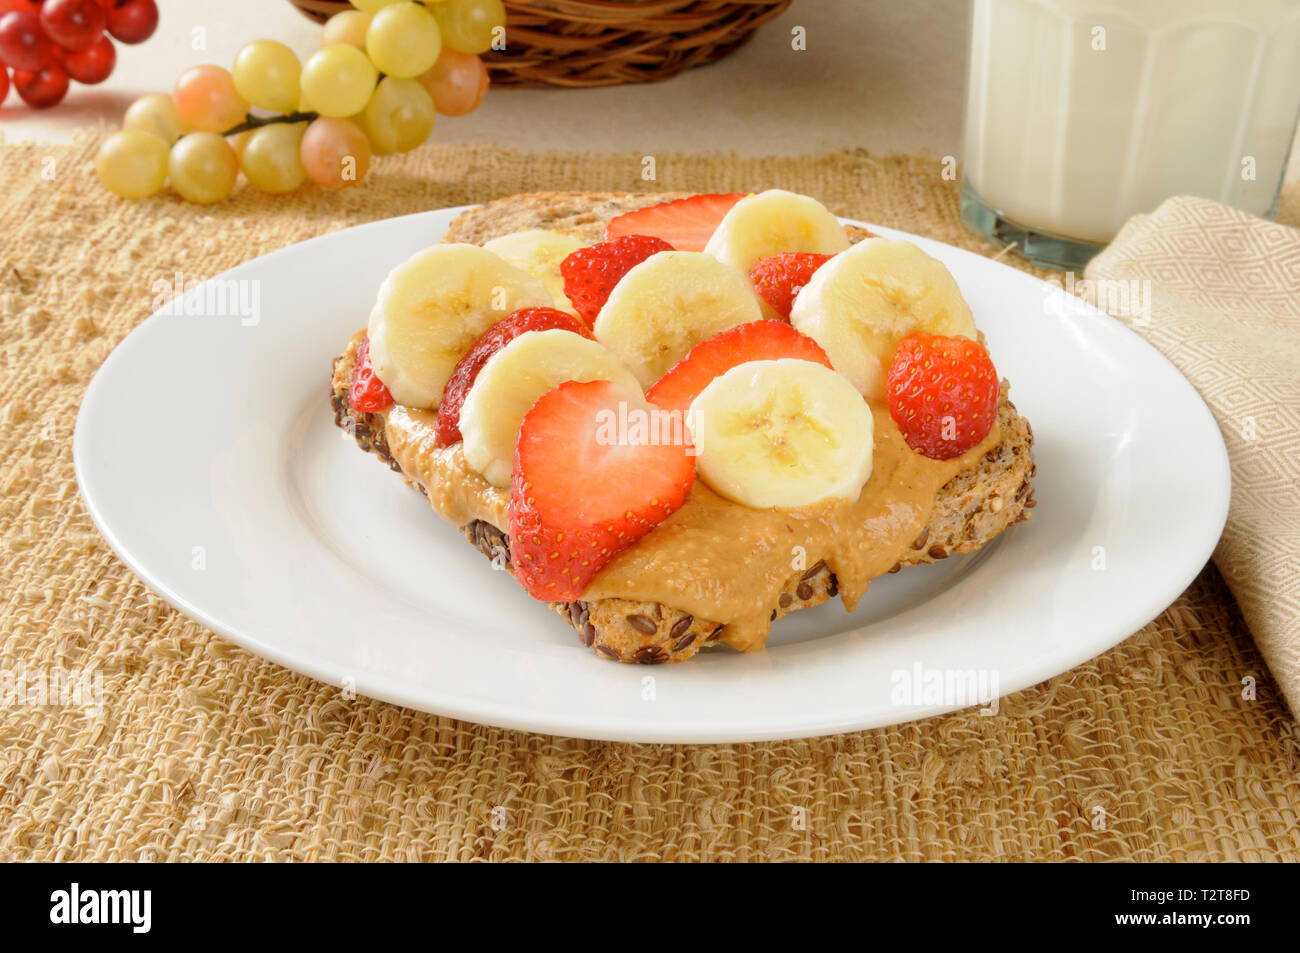 Sprouted seed bread topped with organic peanut butter, bananas and strawberries - Stock Image